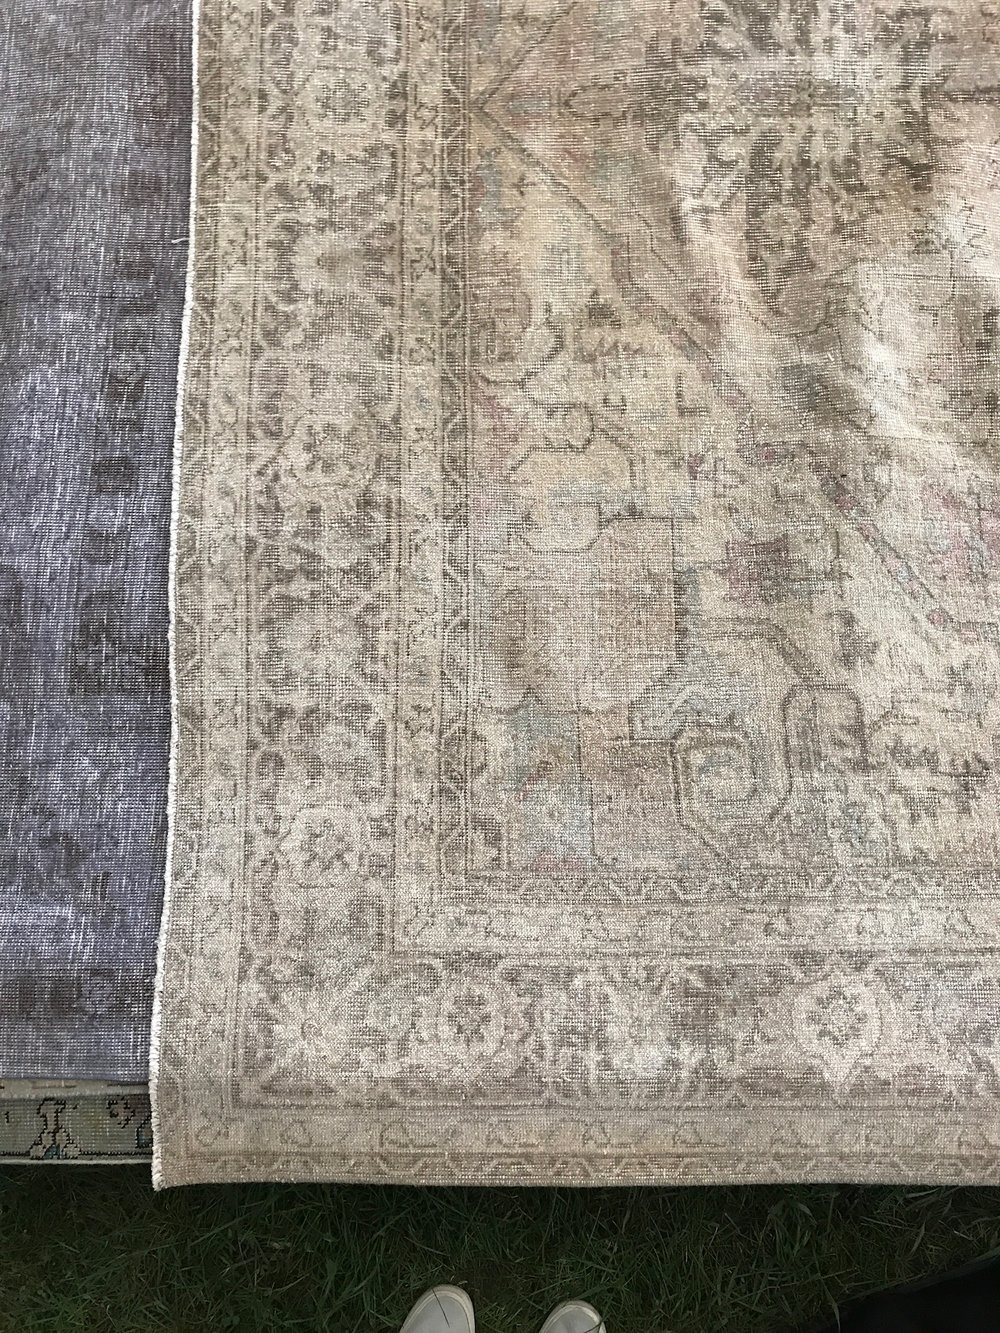 These rugs are from Nomad Trading Co and are to die for in person. The perfect amount of subtle color and pattern.